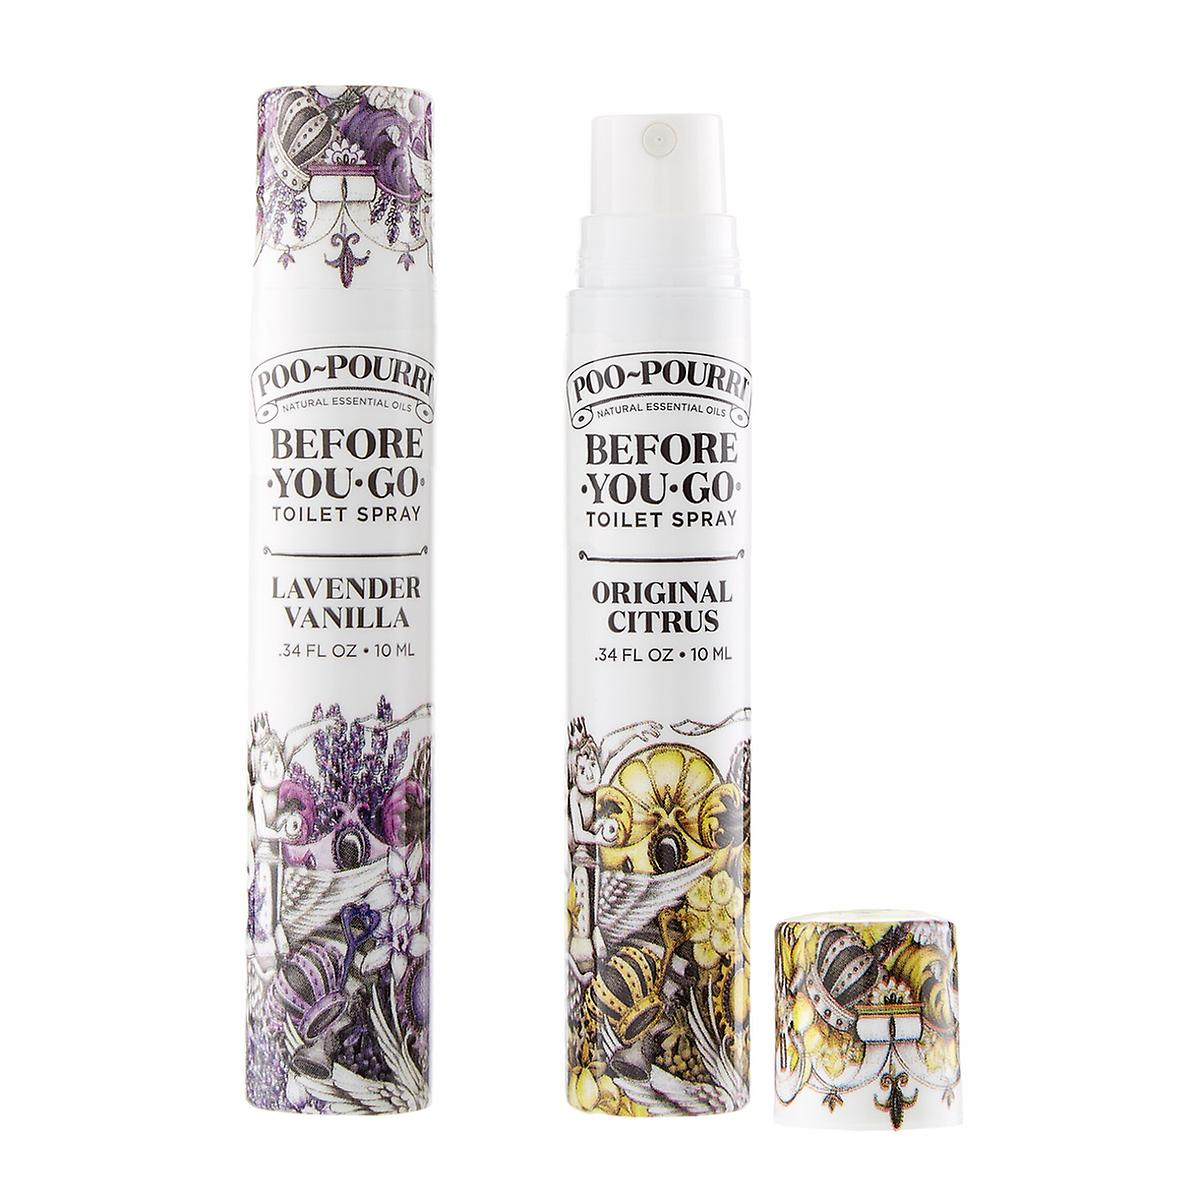 10ml Poo Pourri Sprayers by Container Store